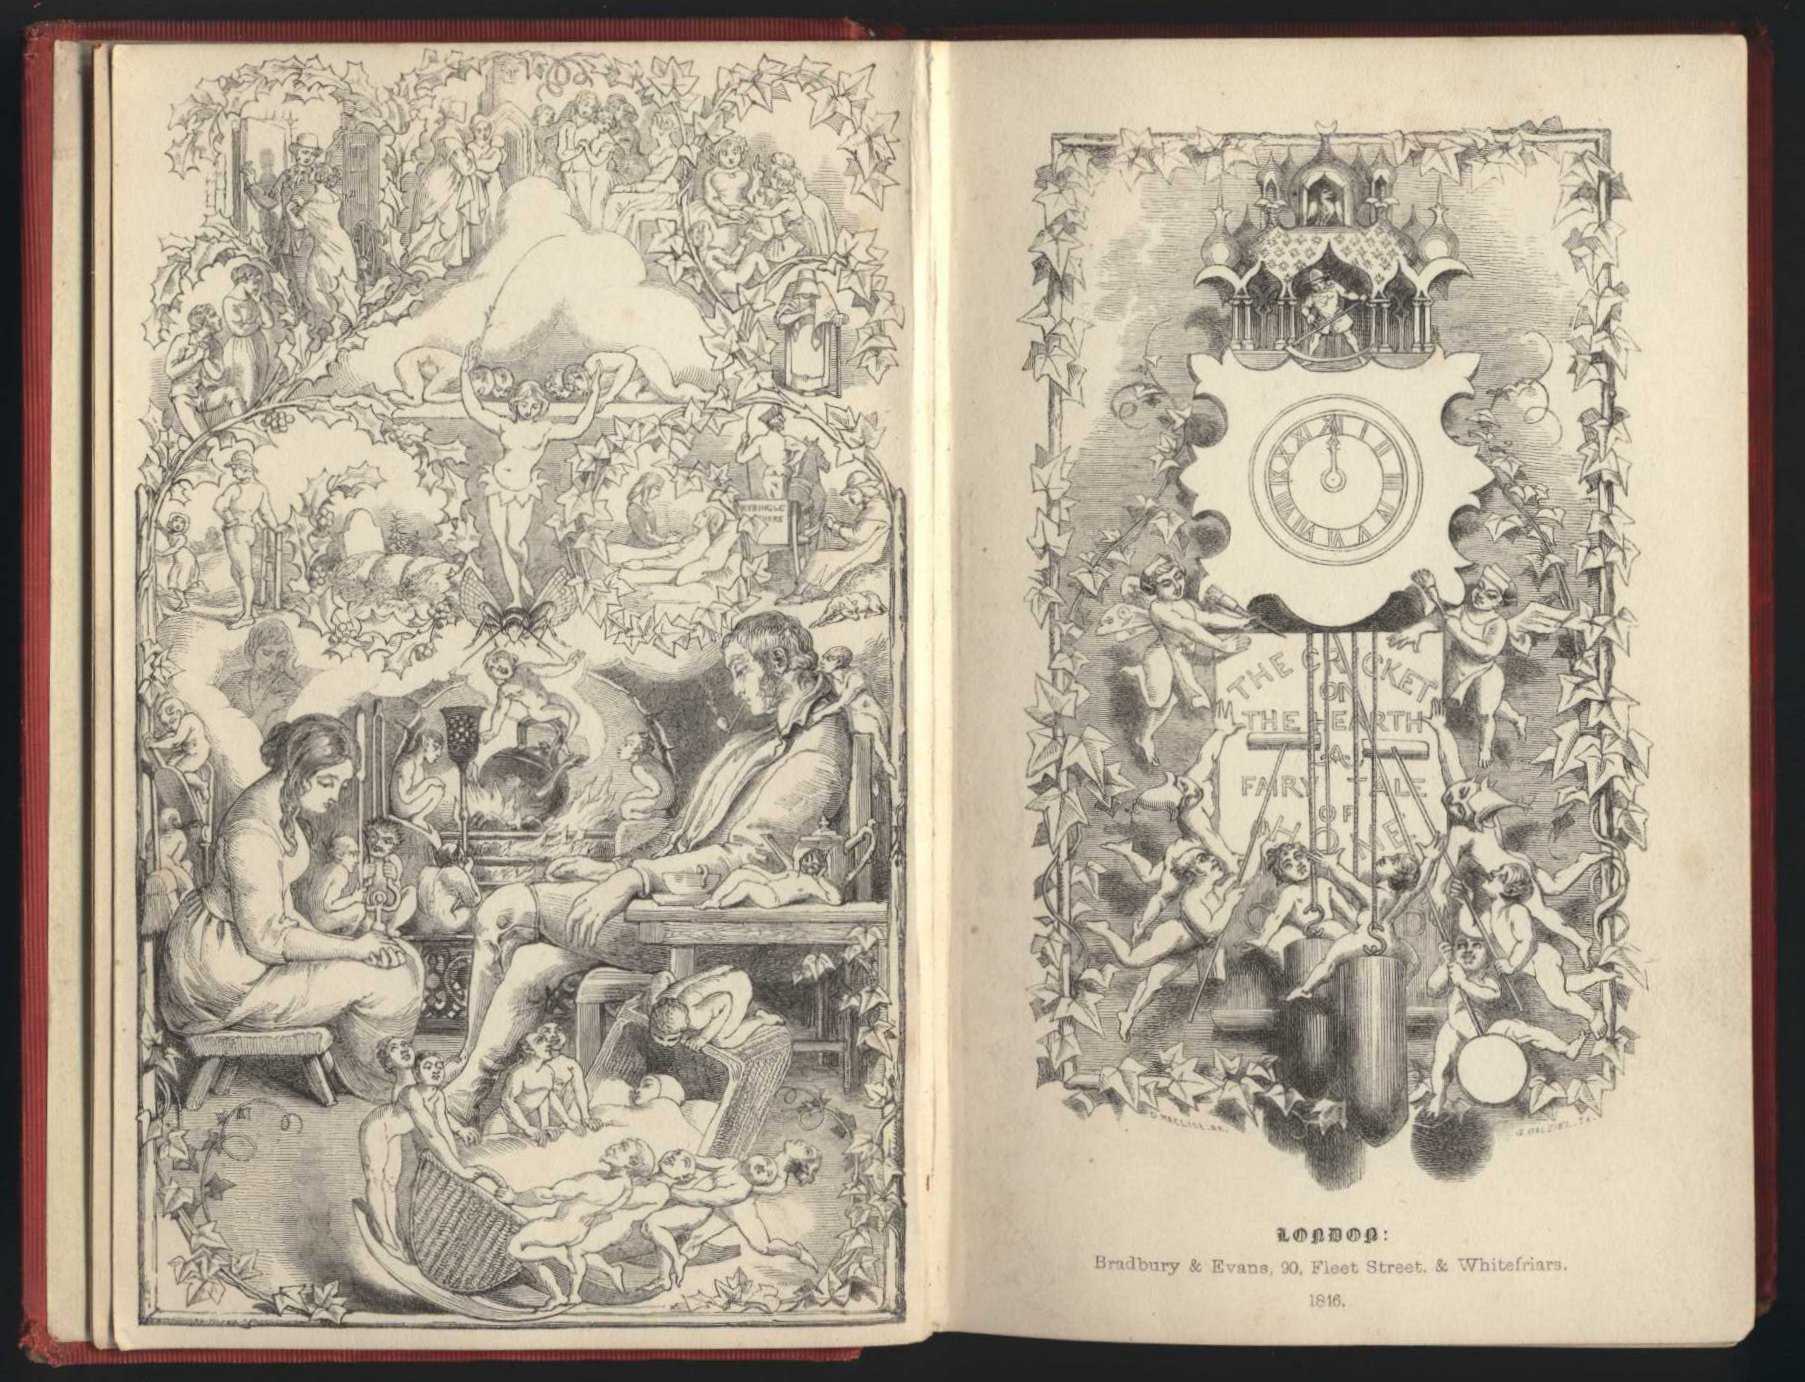 Charles Dickens. The cricket on the hearth: a fairy tale of home. London: Bradbury and Evans, 1846.